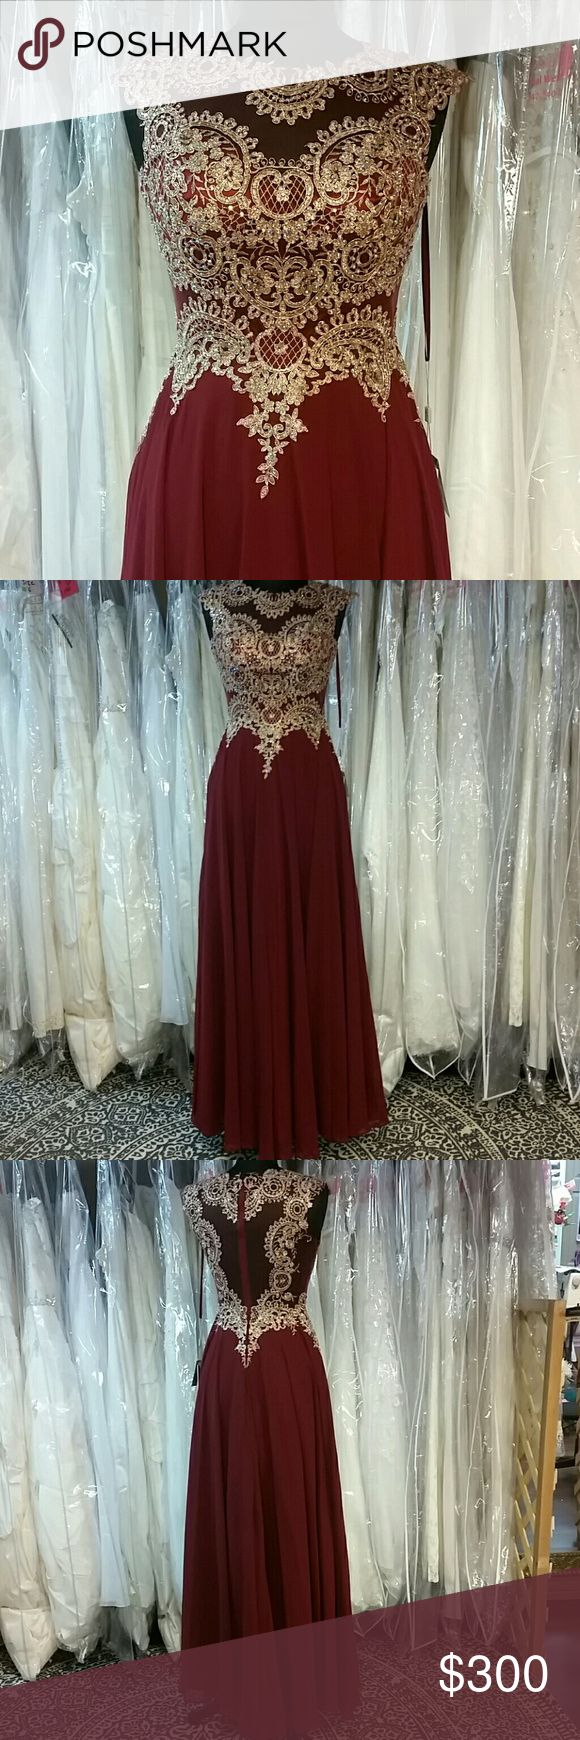 Burgundy/Wine and Gold Gown A dress created by the gods, gorgeous gold embroidered lace with AB crystals to give it shine on top of a burgundy red bodice and flowy chiffon skirt. Zipper back, illusion back (unlined and slightly stretchy), great for prom, homecoming, wedding, pageants, parties, or any formal event. Designer: Let's Fashion, size: small, color: burgundy/wine red. Sherri Hill for exposure. This dress will have you feeling like a queen. Sherri Hill Dresses